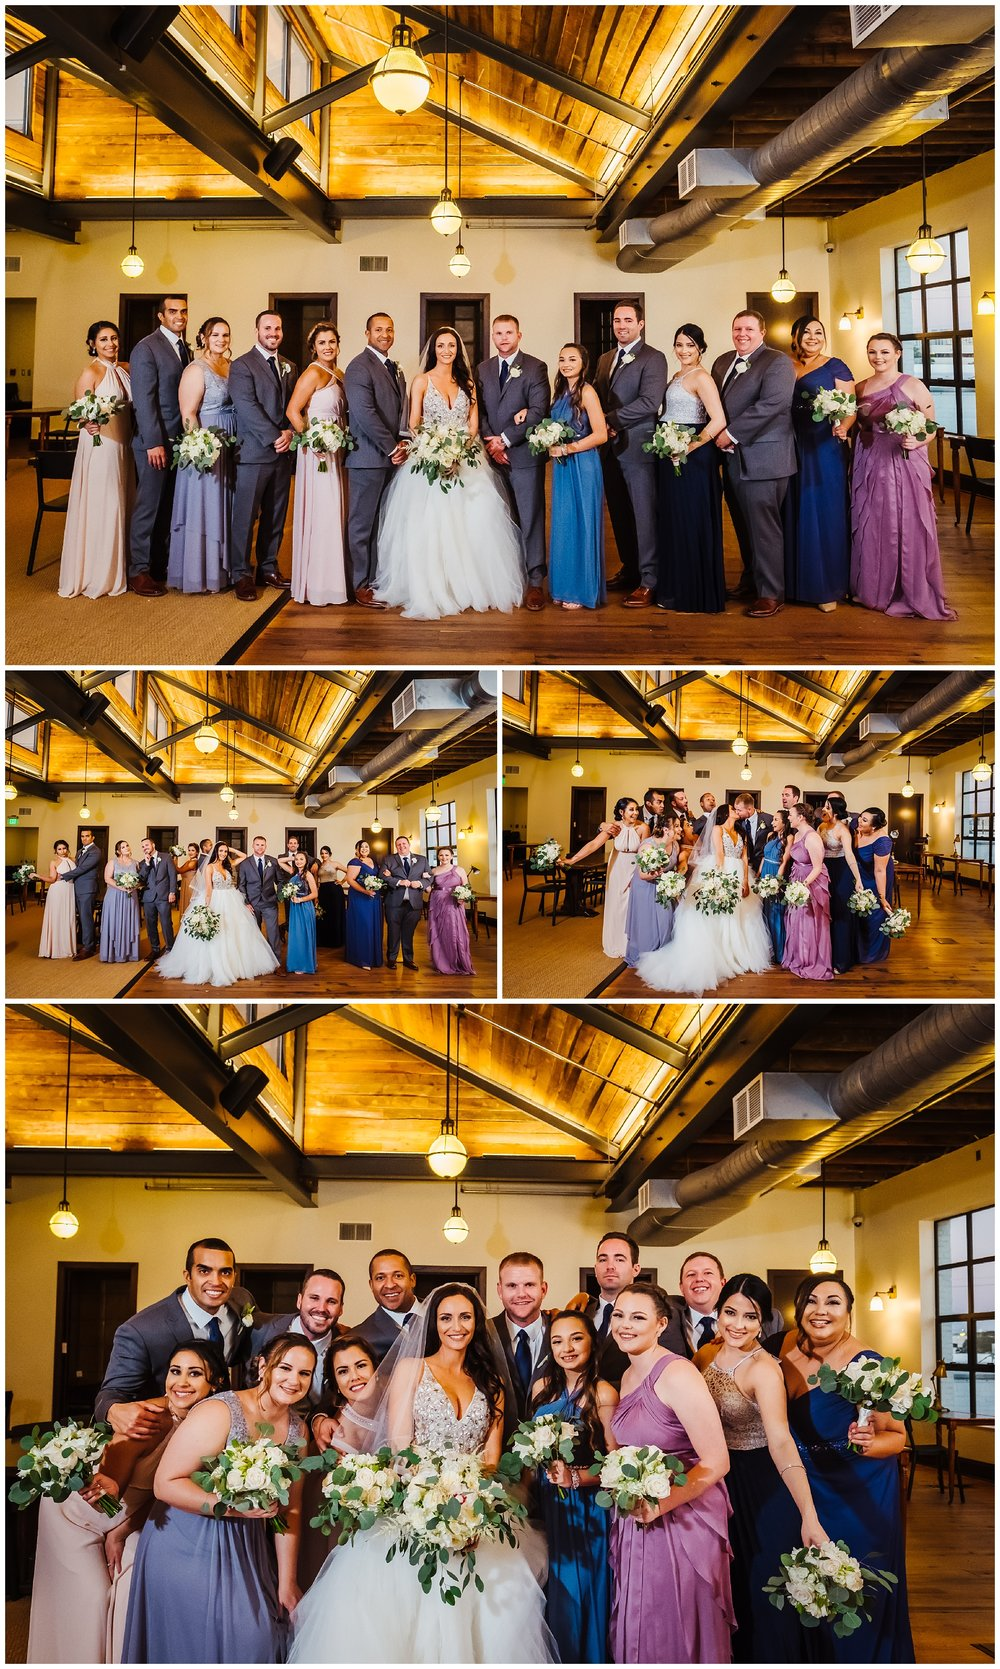 tampa-wedding-photographer-oxford-exchange-garland-candlelight-gold-hayley-paige_0037.jpg